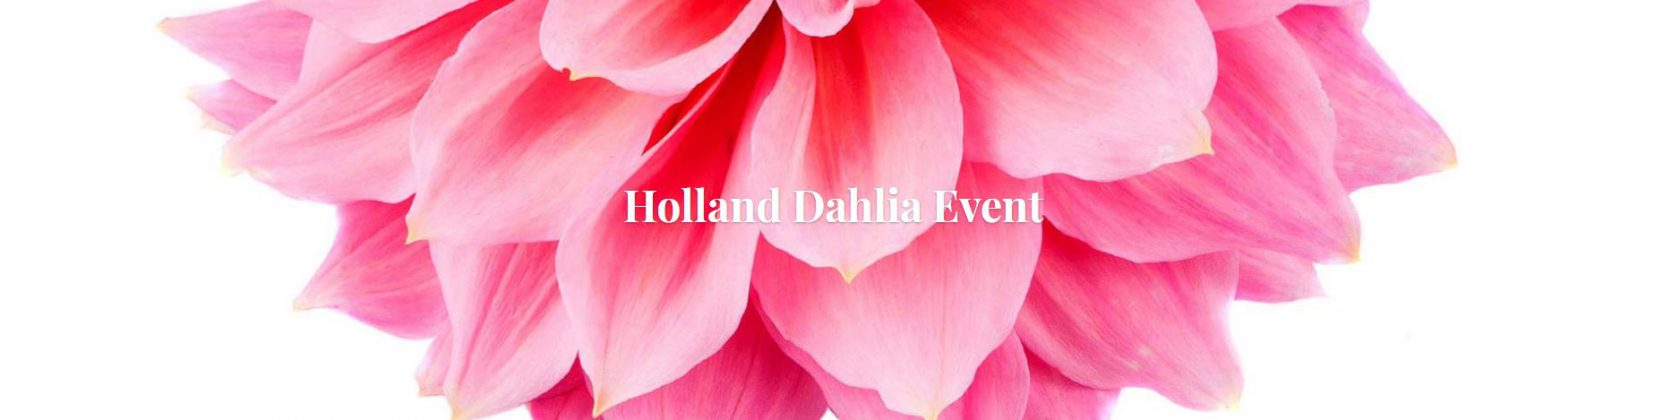 Holland Dahlia Event